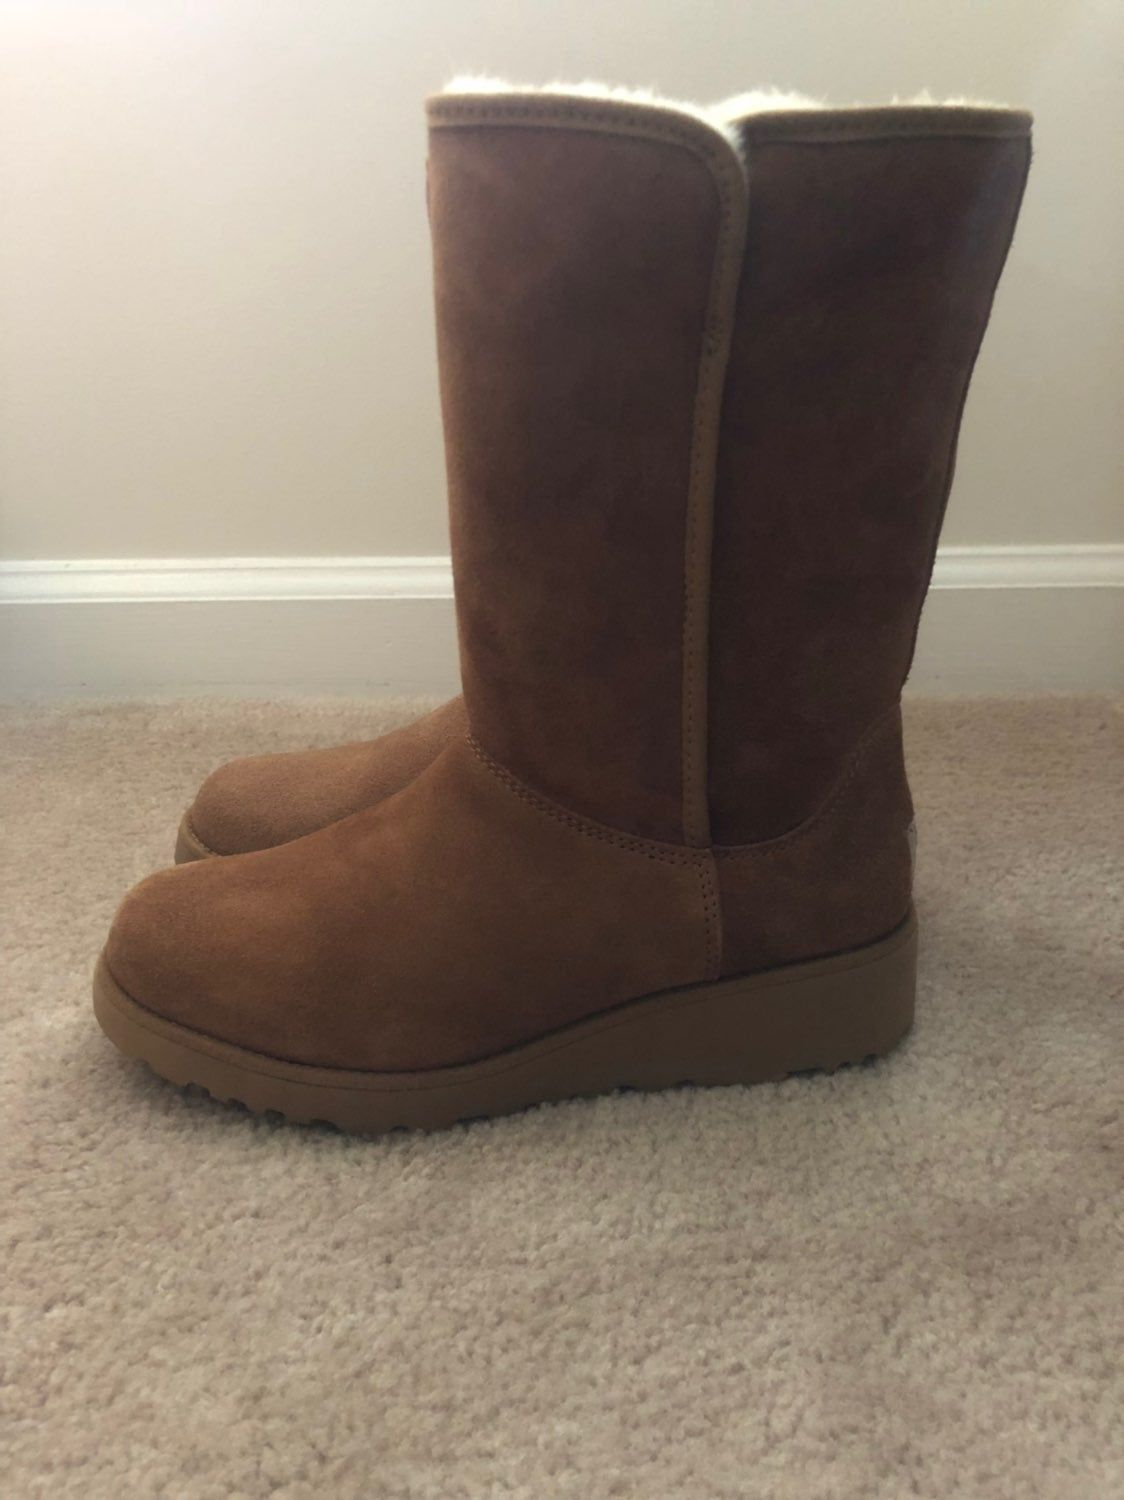 Brand new uggs UGG Amie Boots in Chestnut. Size 12 100